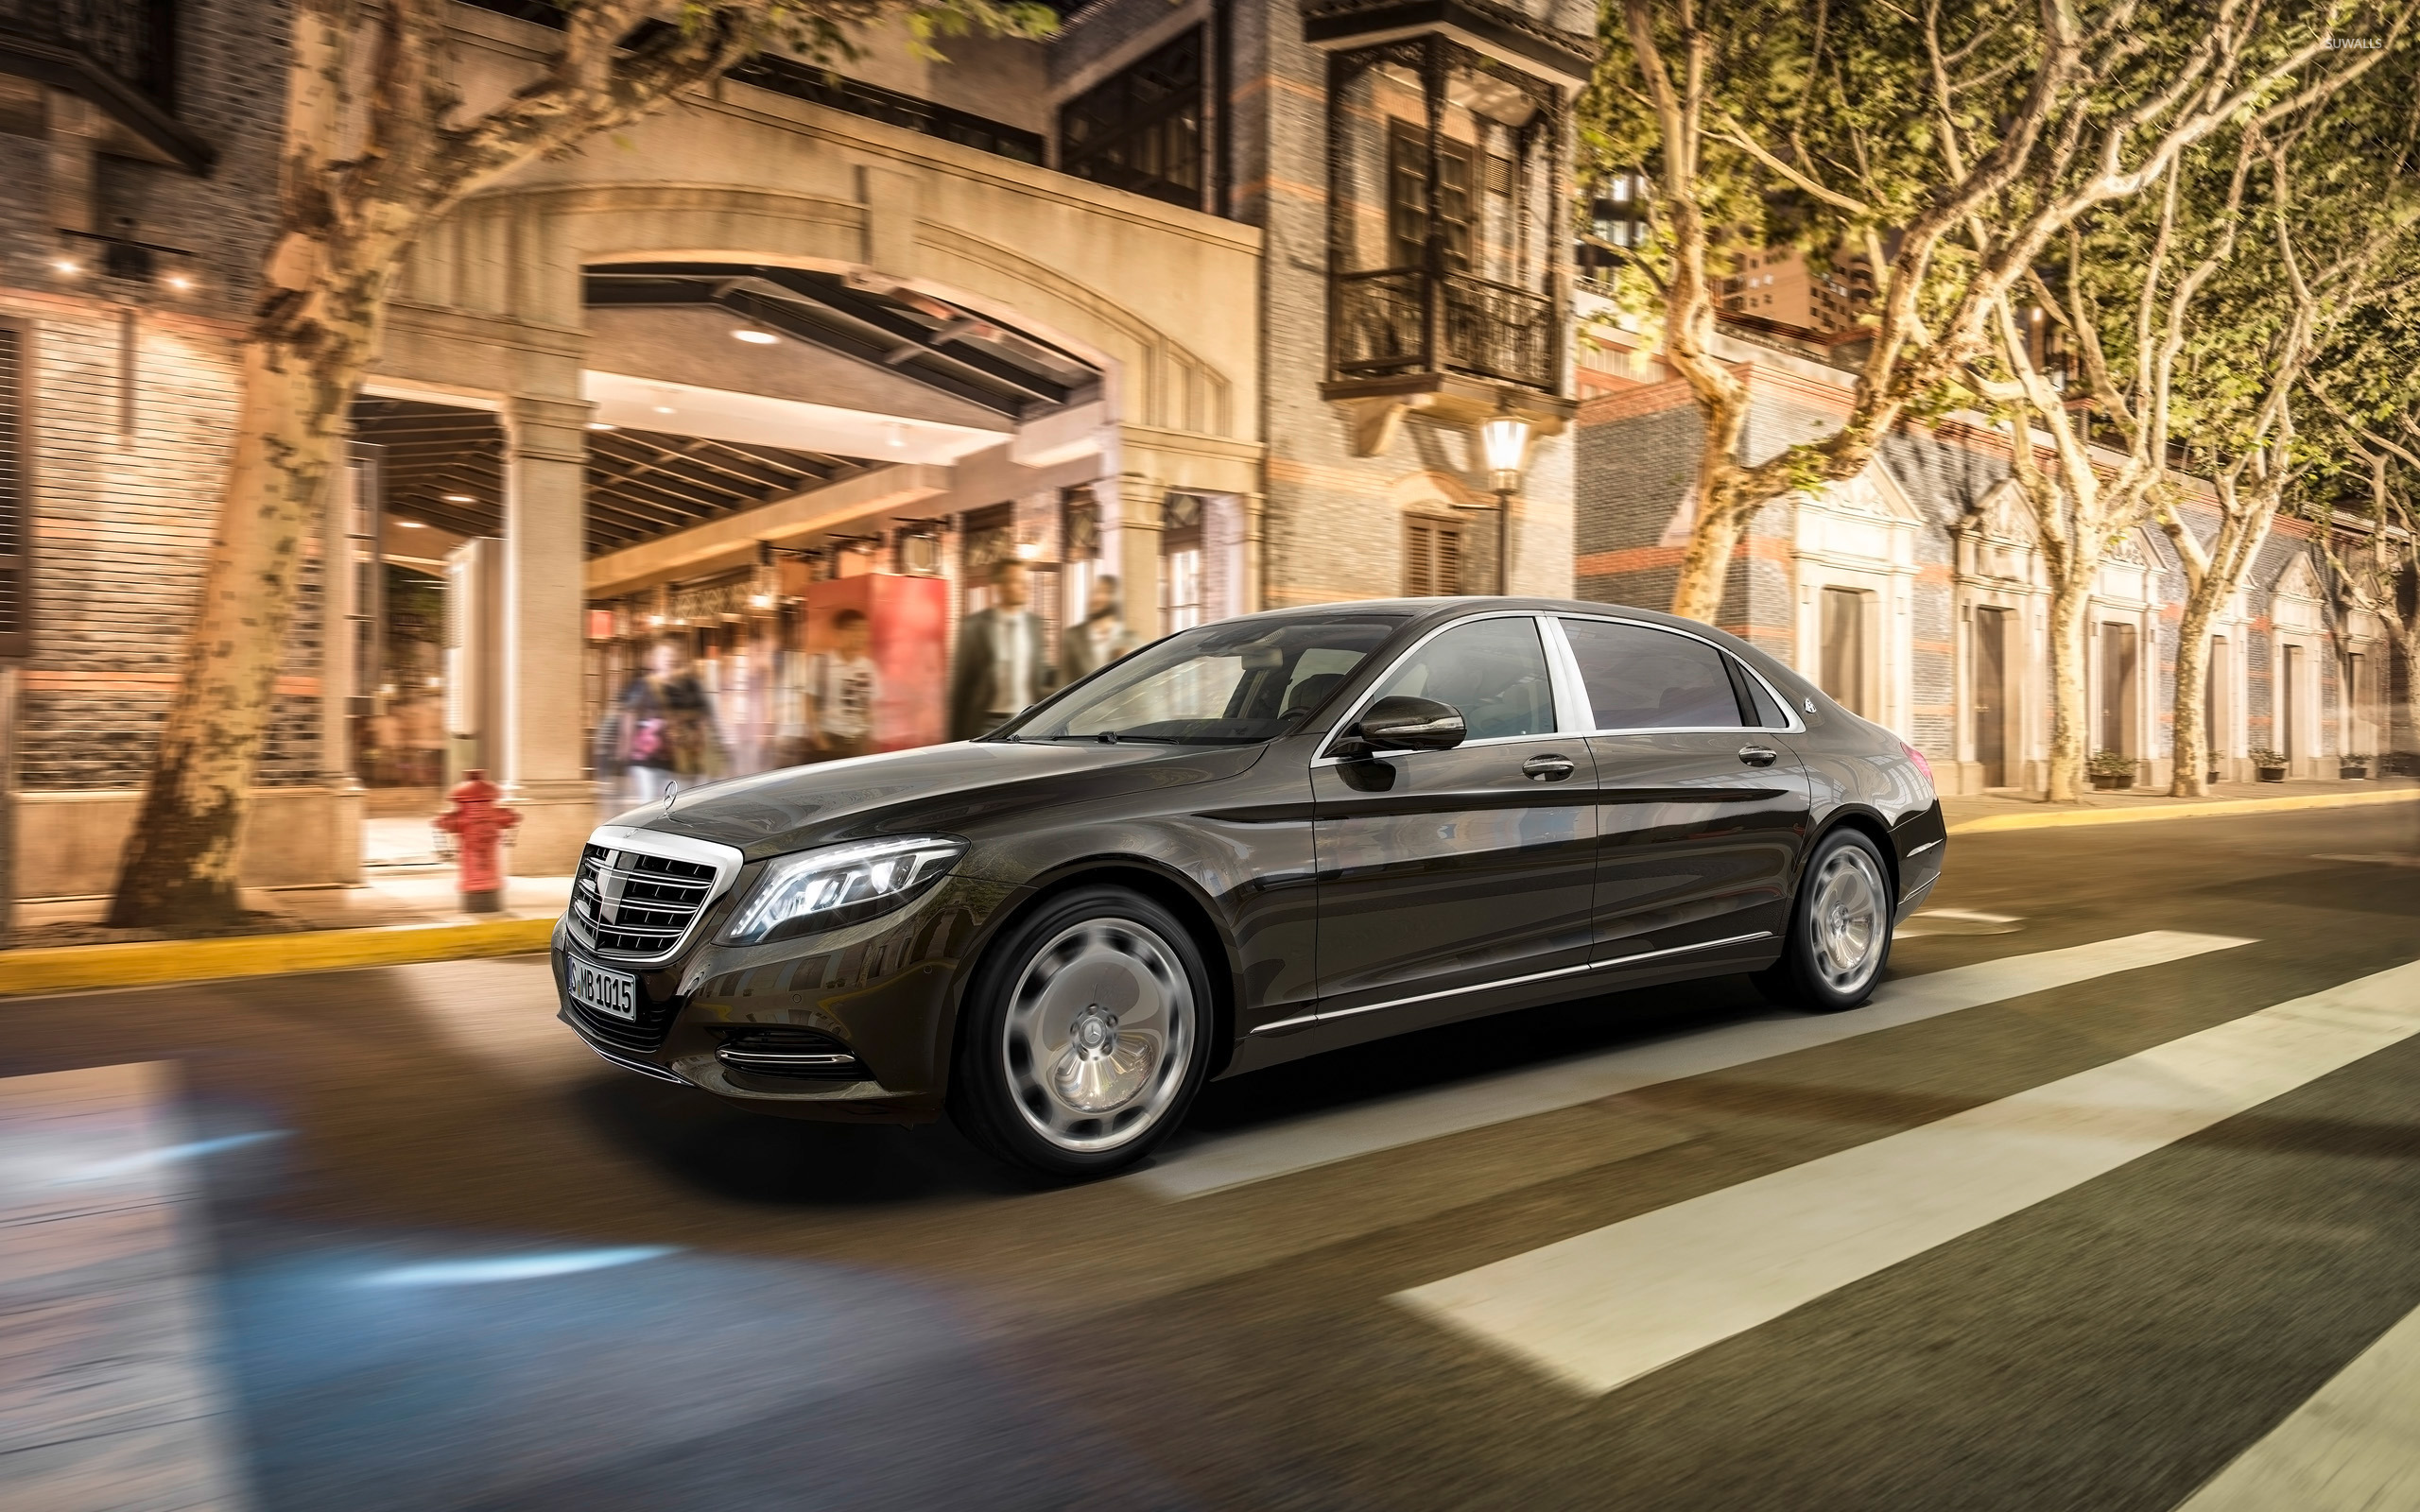 2015 Mercedes Maybach S600 [5] wallpaper   Car wallpapers 2560x1600